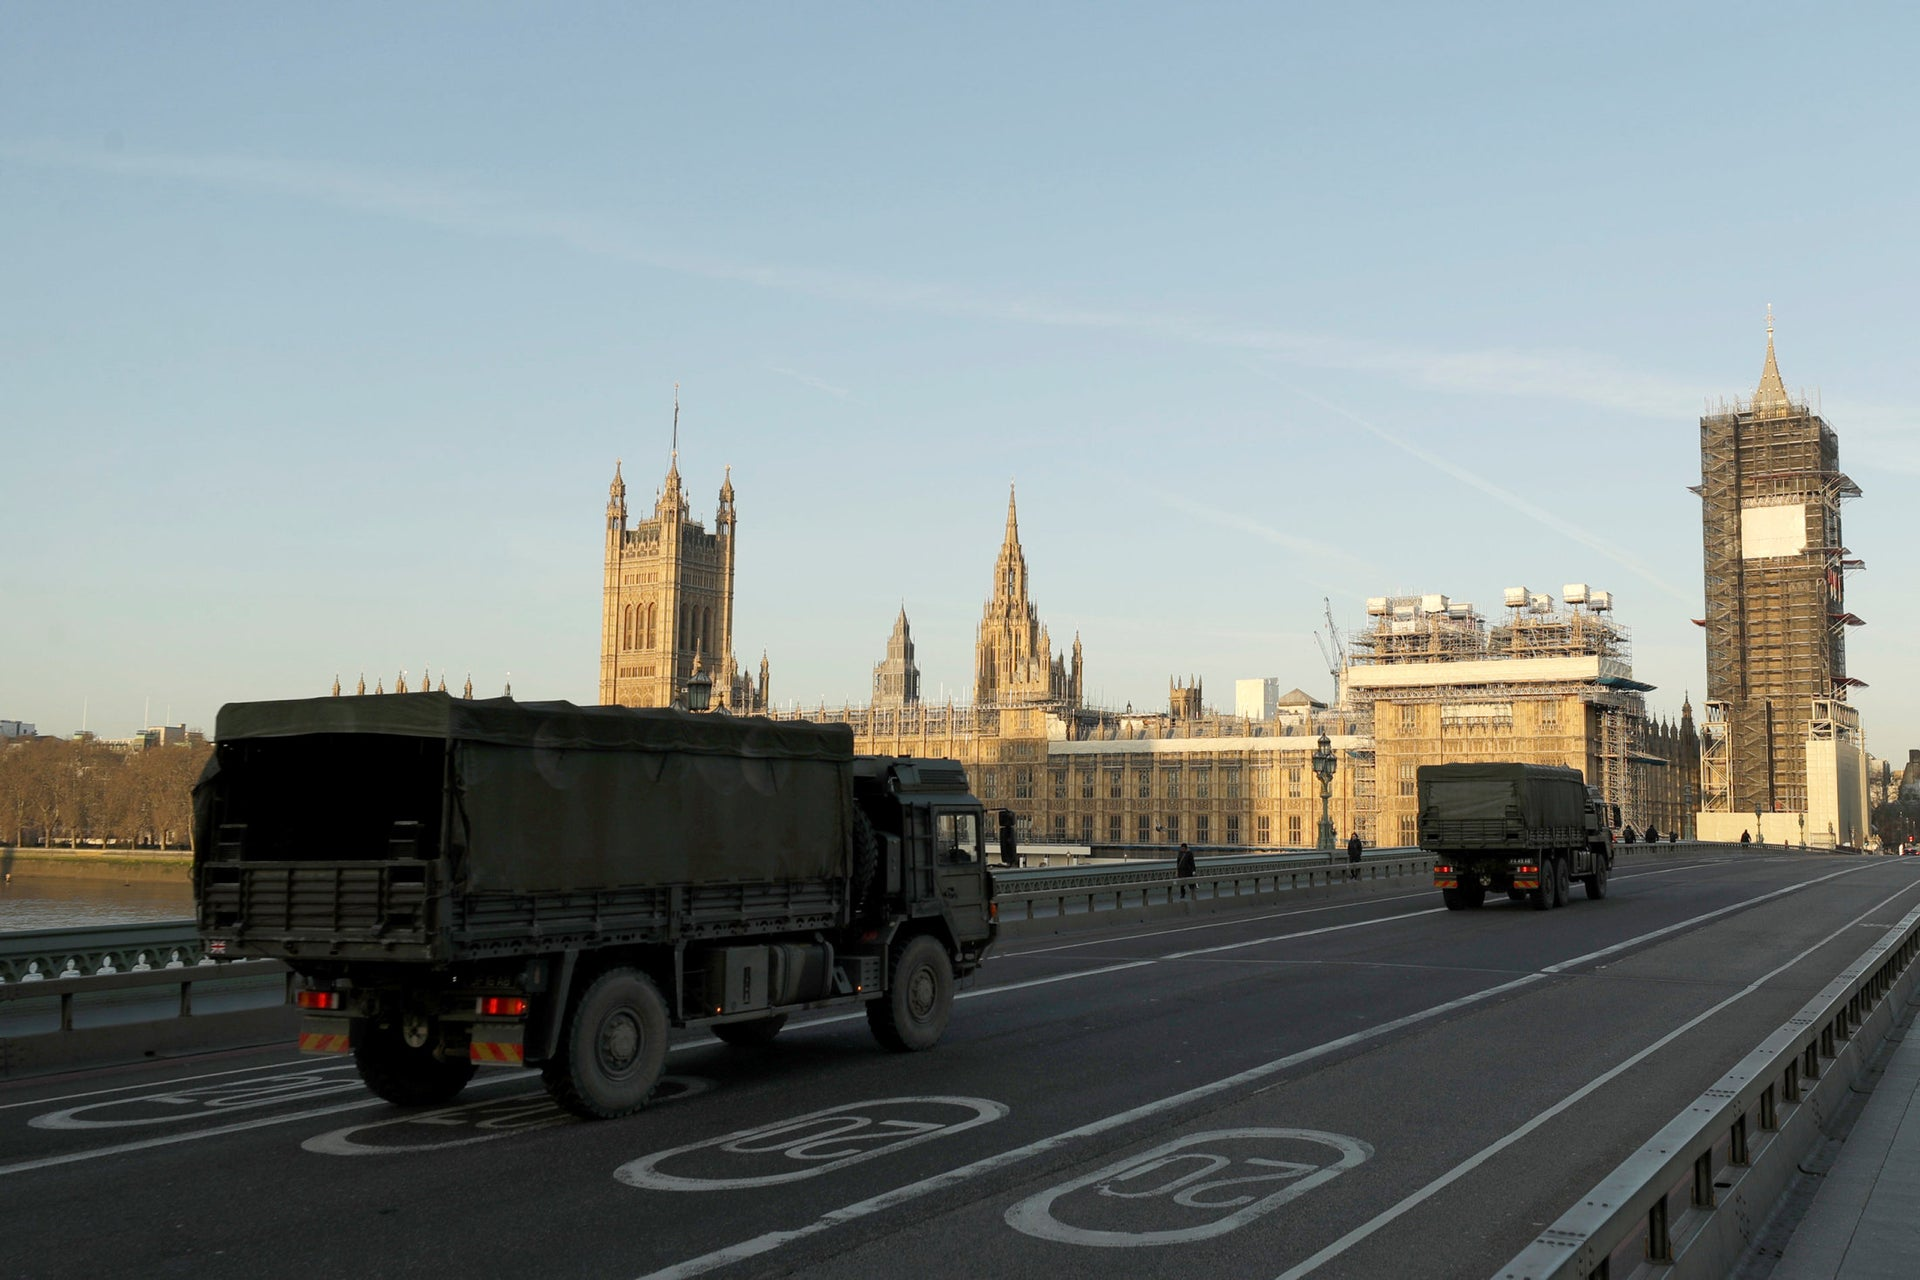 British Army trucks cross Westminster Bridge towards the Houses of Parliament in London, March 24, 2020.